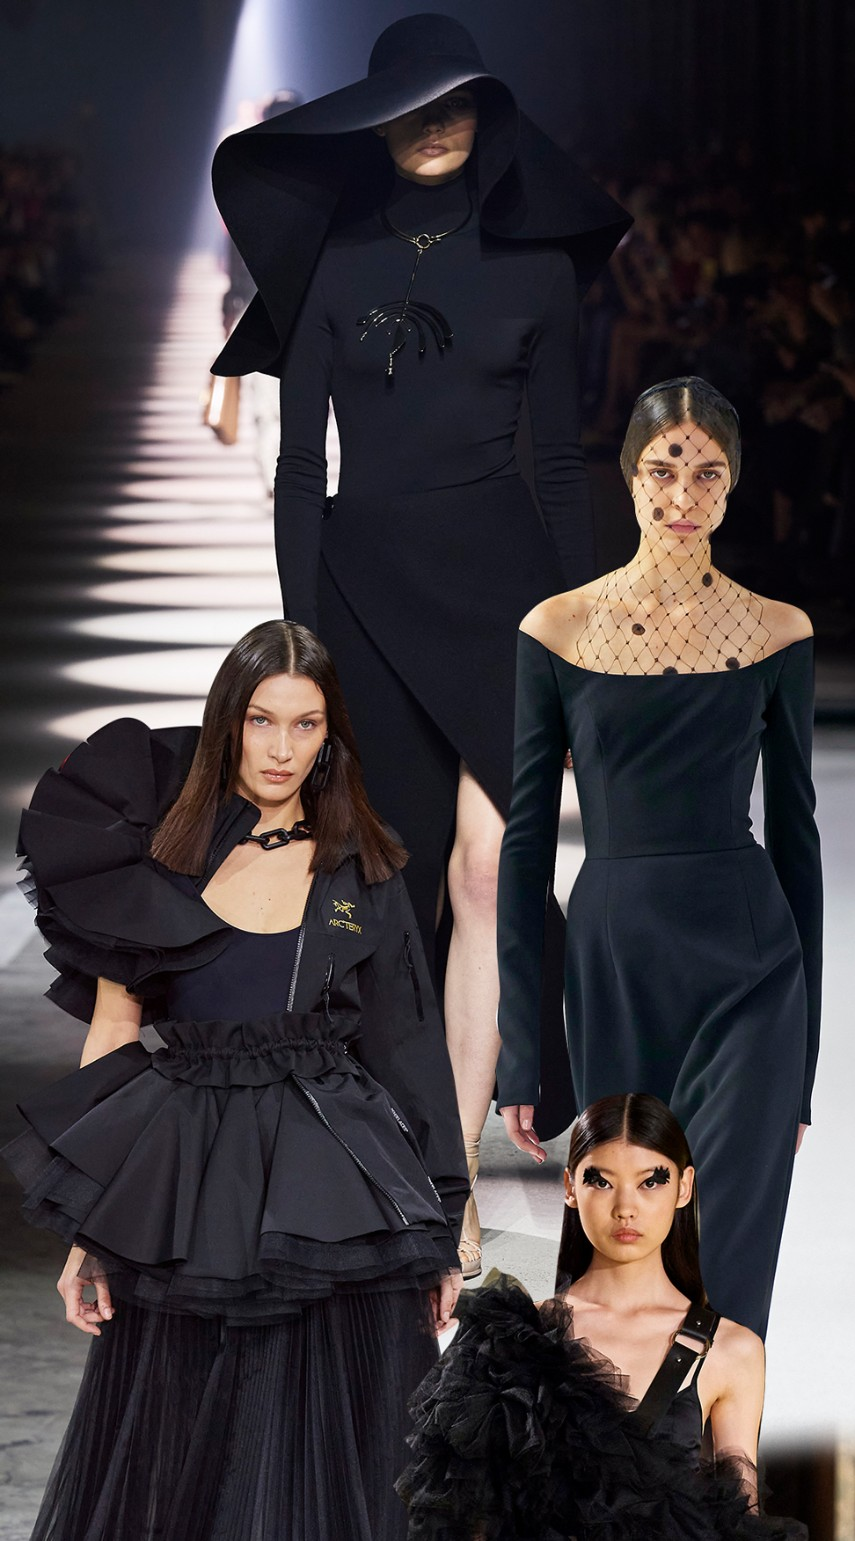 The Hottest And Most Coveted Fashion Trends From The Fall 2020 Runways (16) fashion trend The Hottest And Most Coveted Fashion Trends From The Fall 2020 Runways The Hottest And Most Coveted Fashion Trends From The Fall 2020 Runways 16